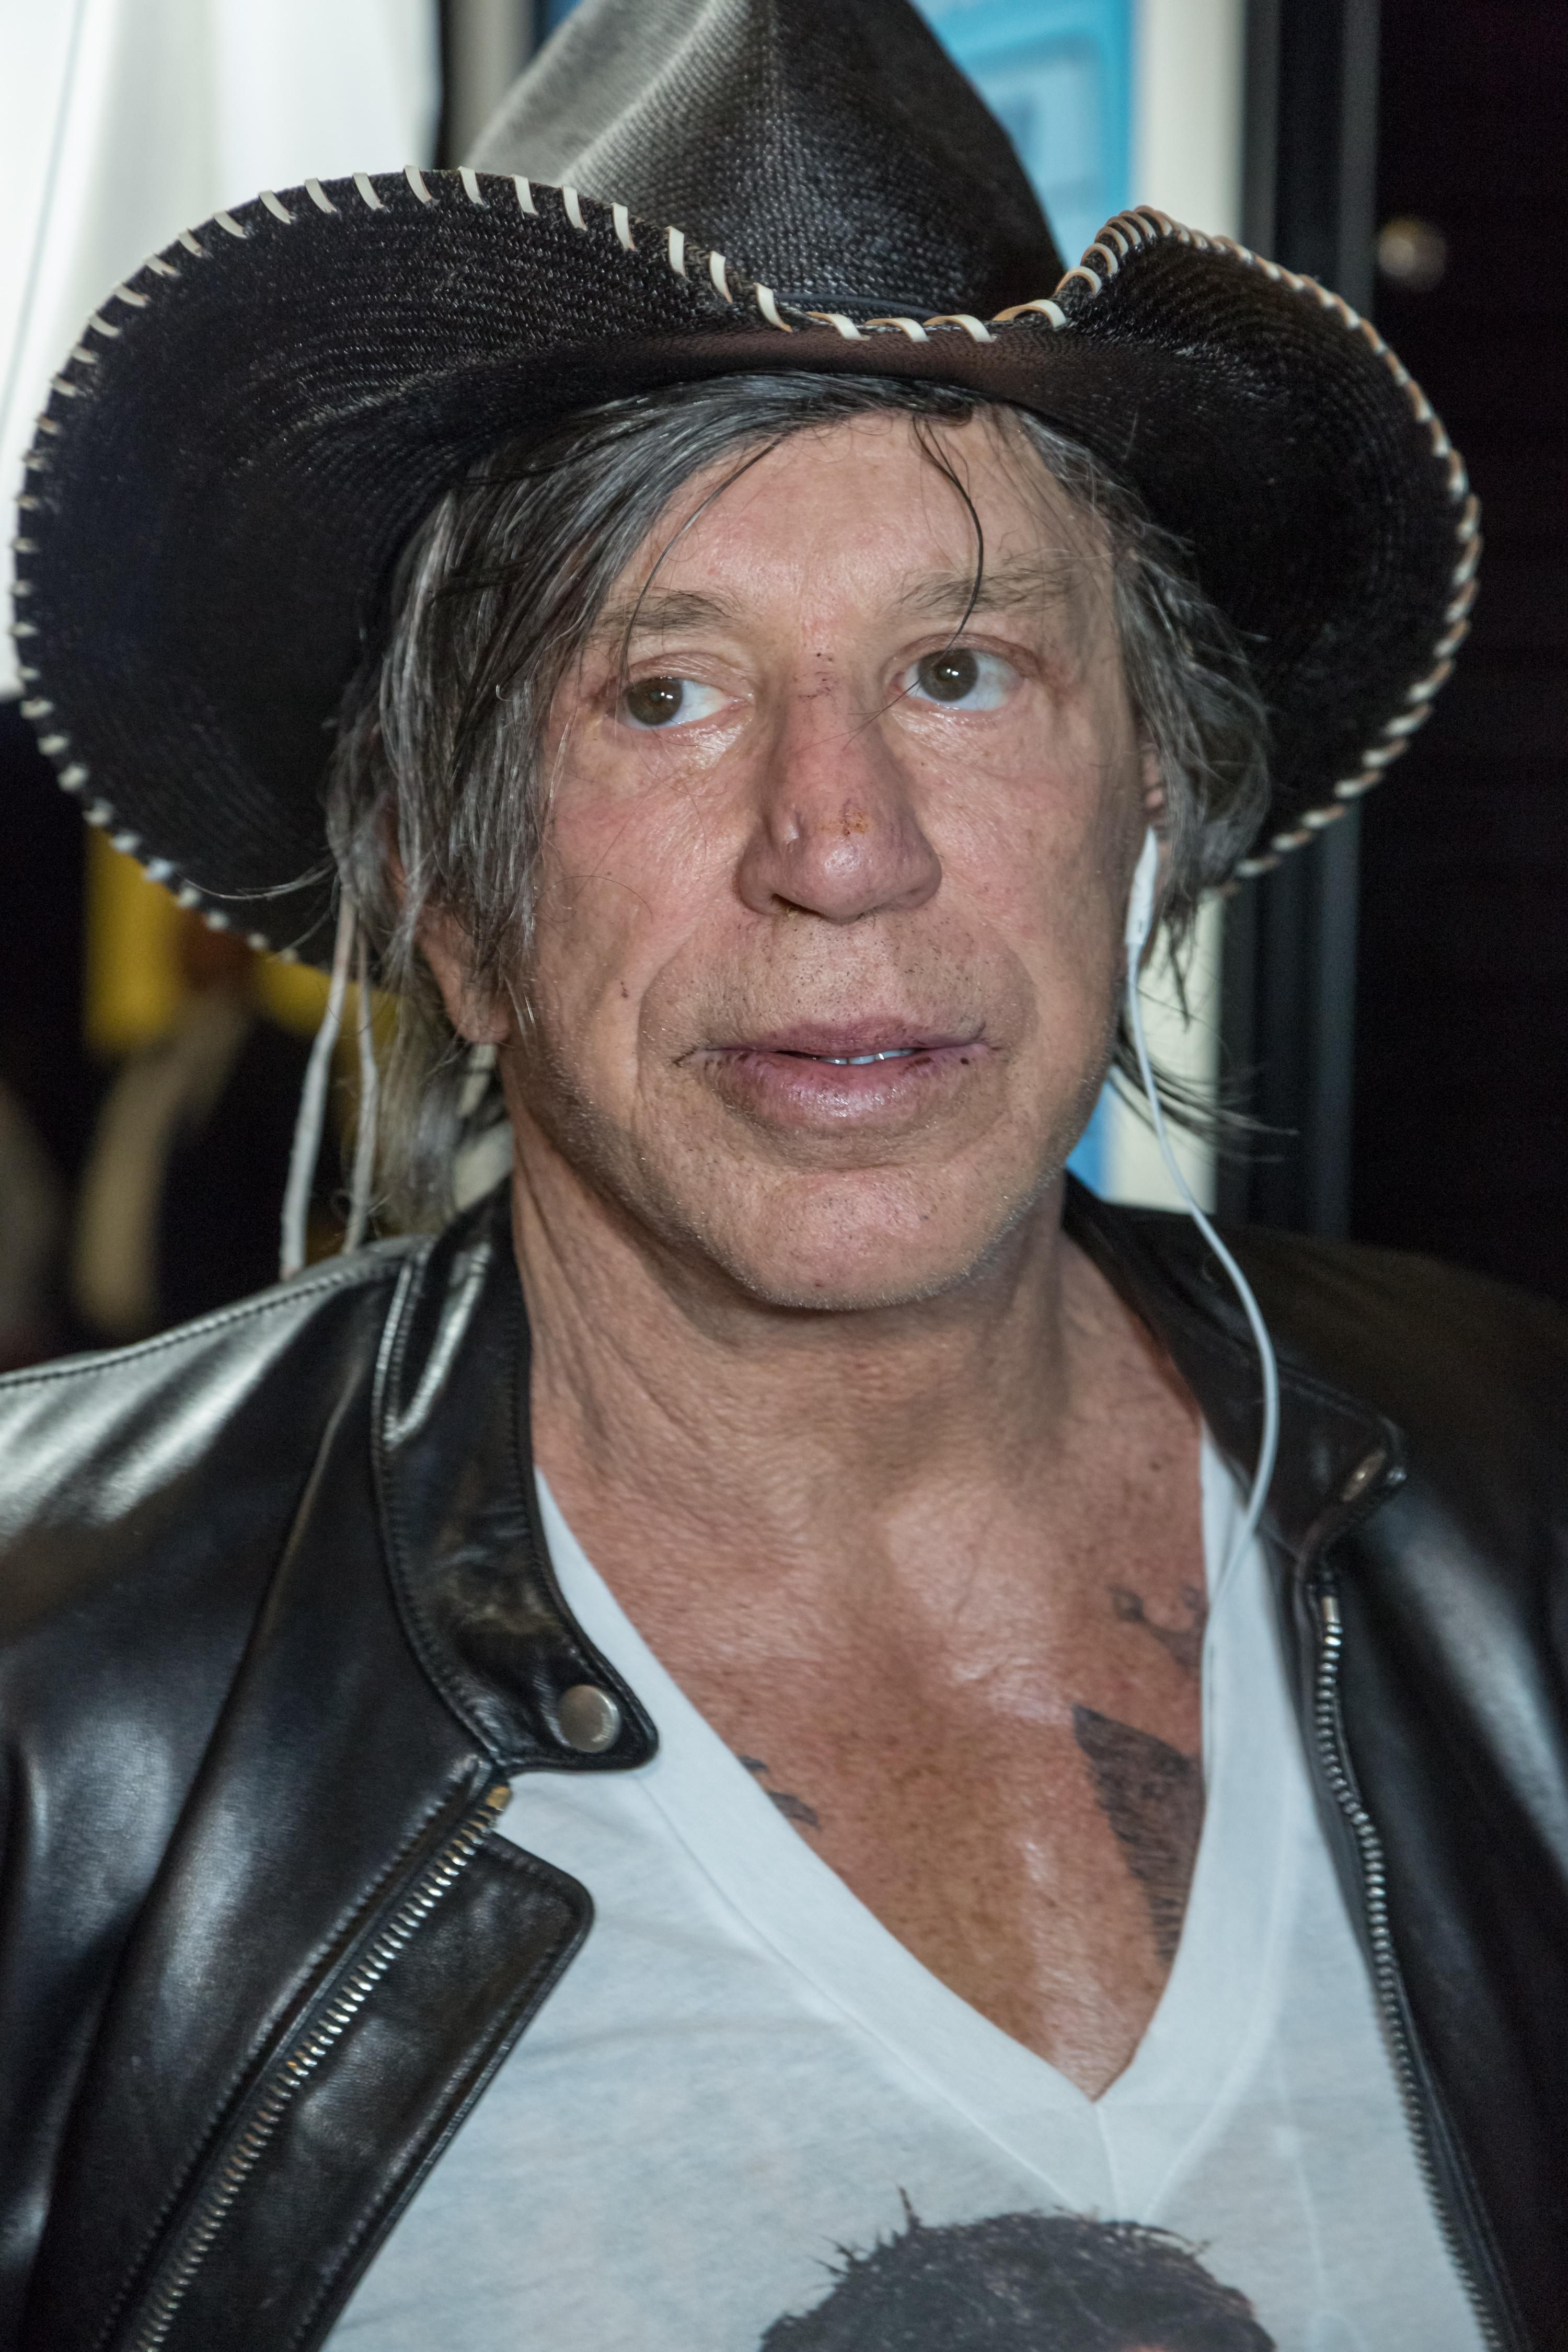 Mickey Rourke shares photo after nose surgery [Video]